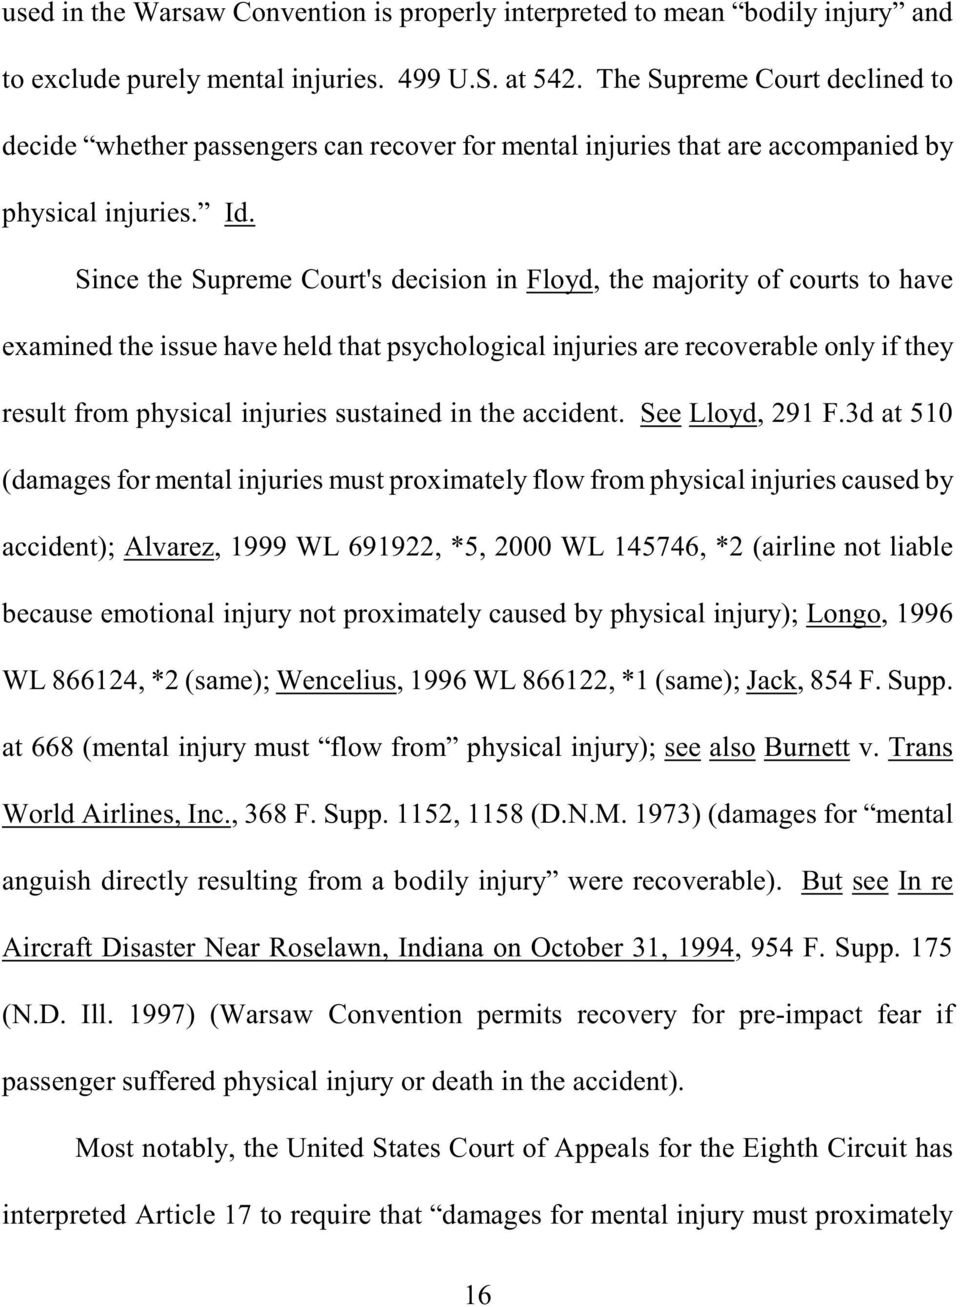 Since the Supreme Court's decision in Floyd, the majority of courts to have examined the issue have held that psychological injuries are recoverable only if they result from physical injuries